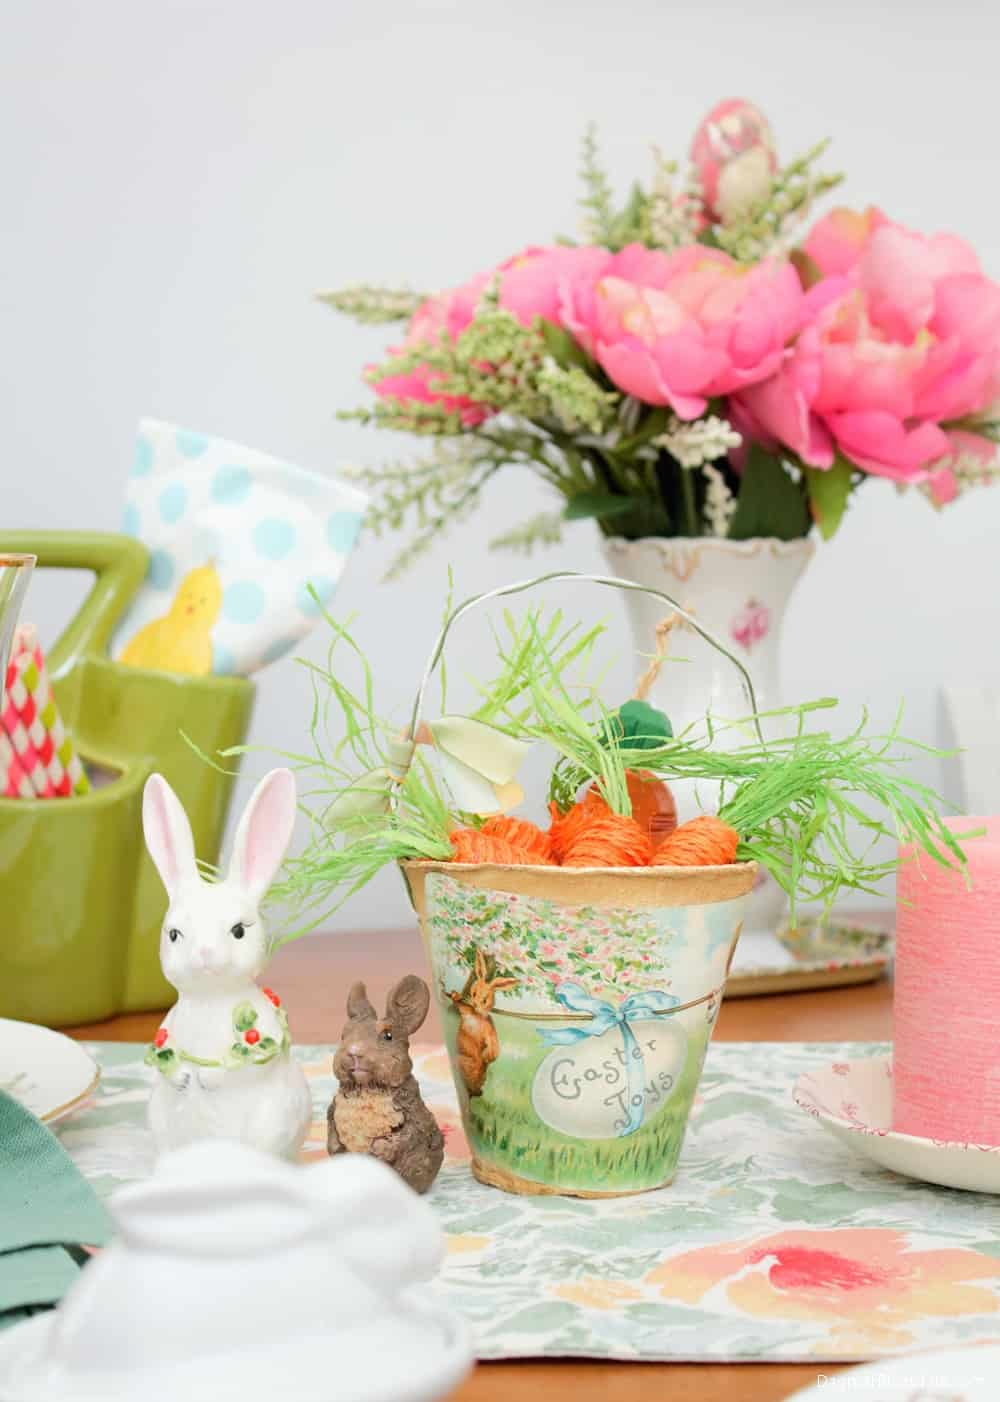 Thrifty Easter decor, DagmarBleasdale.com